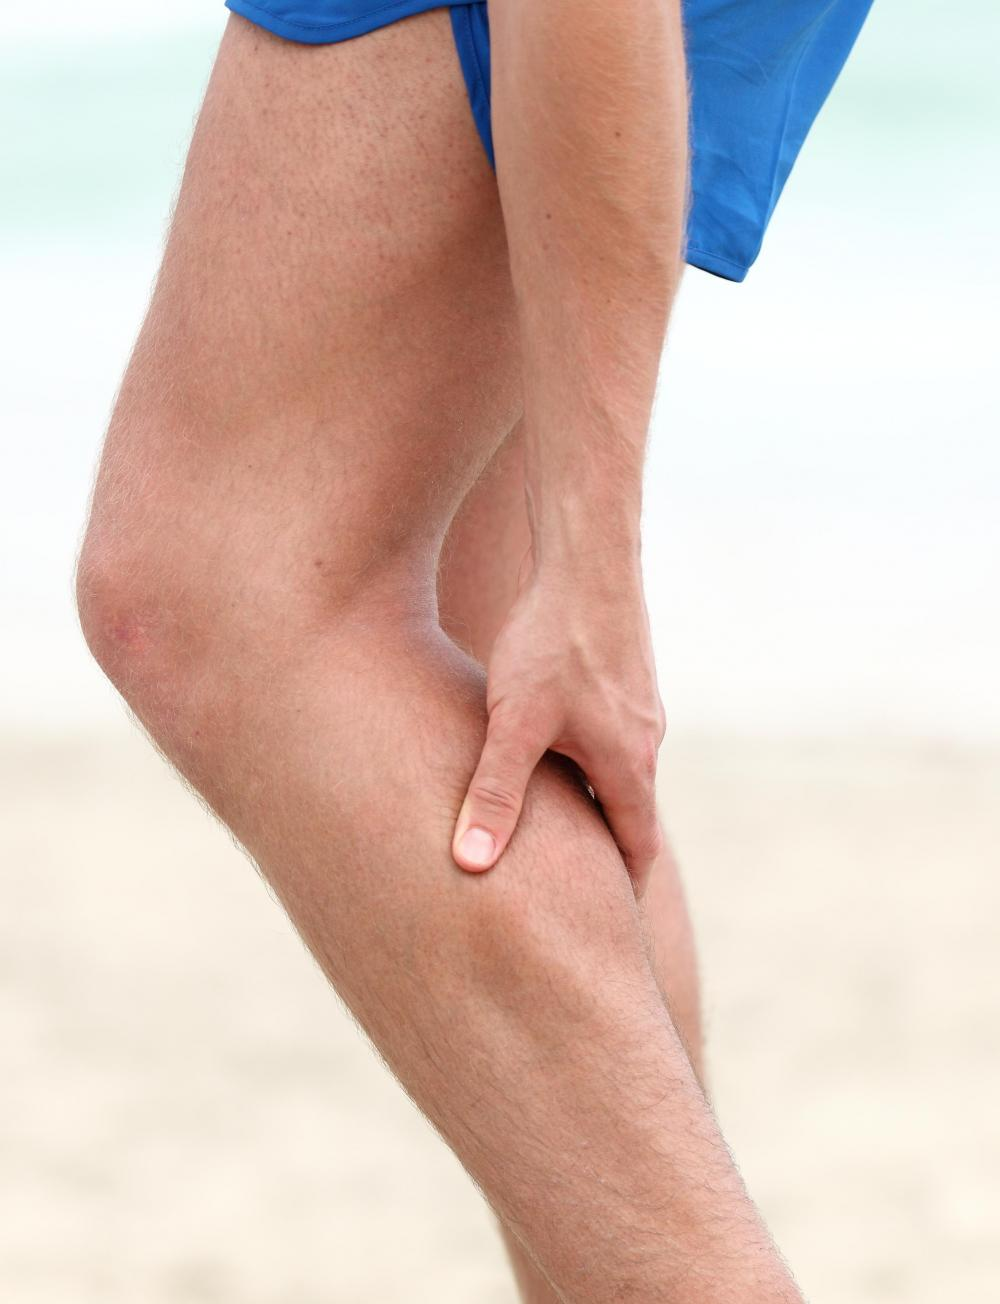 Muscle Cramps: Sports Injuries